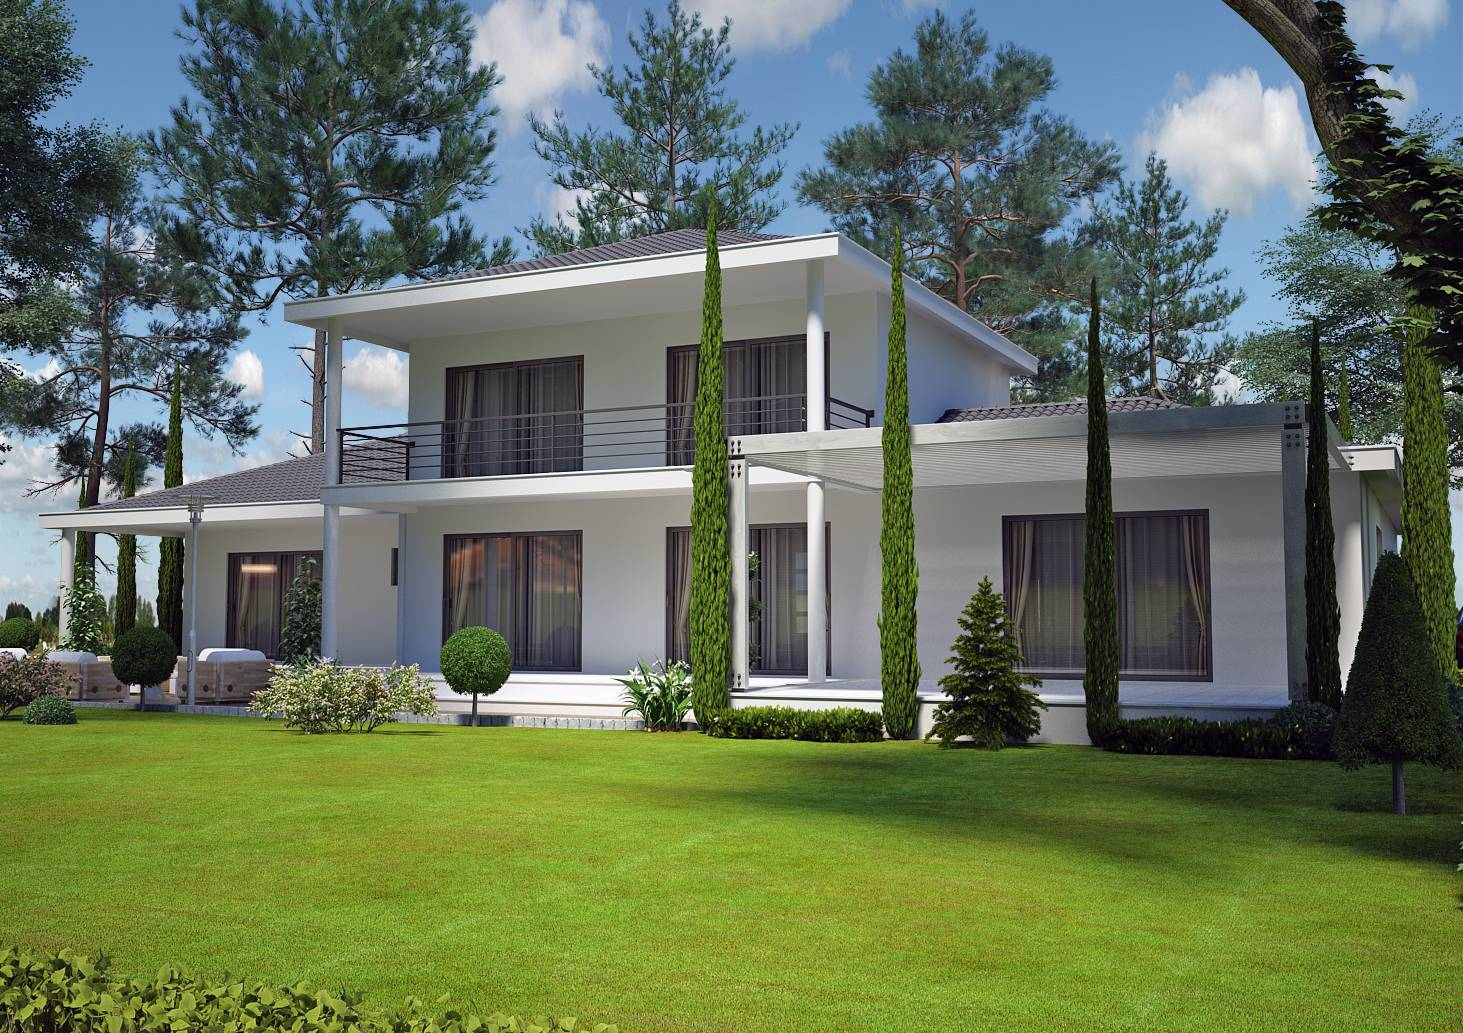 Villa contemporaine 150 m2 etage mod le pinede salon for Plans de maison constructeurs